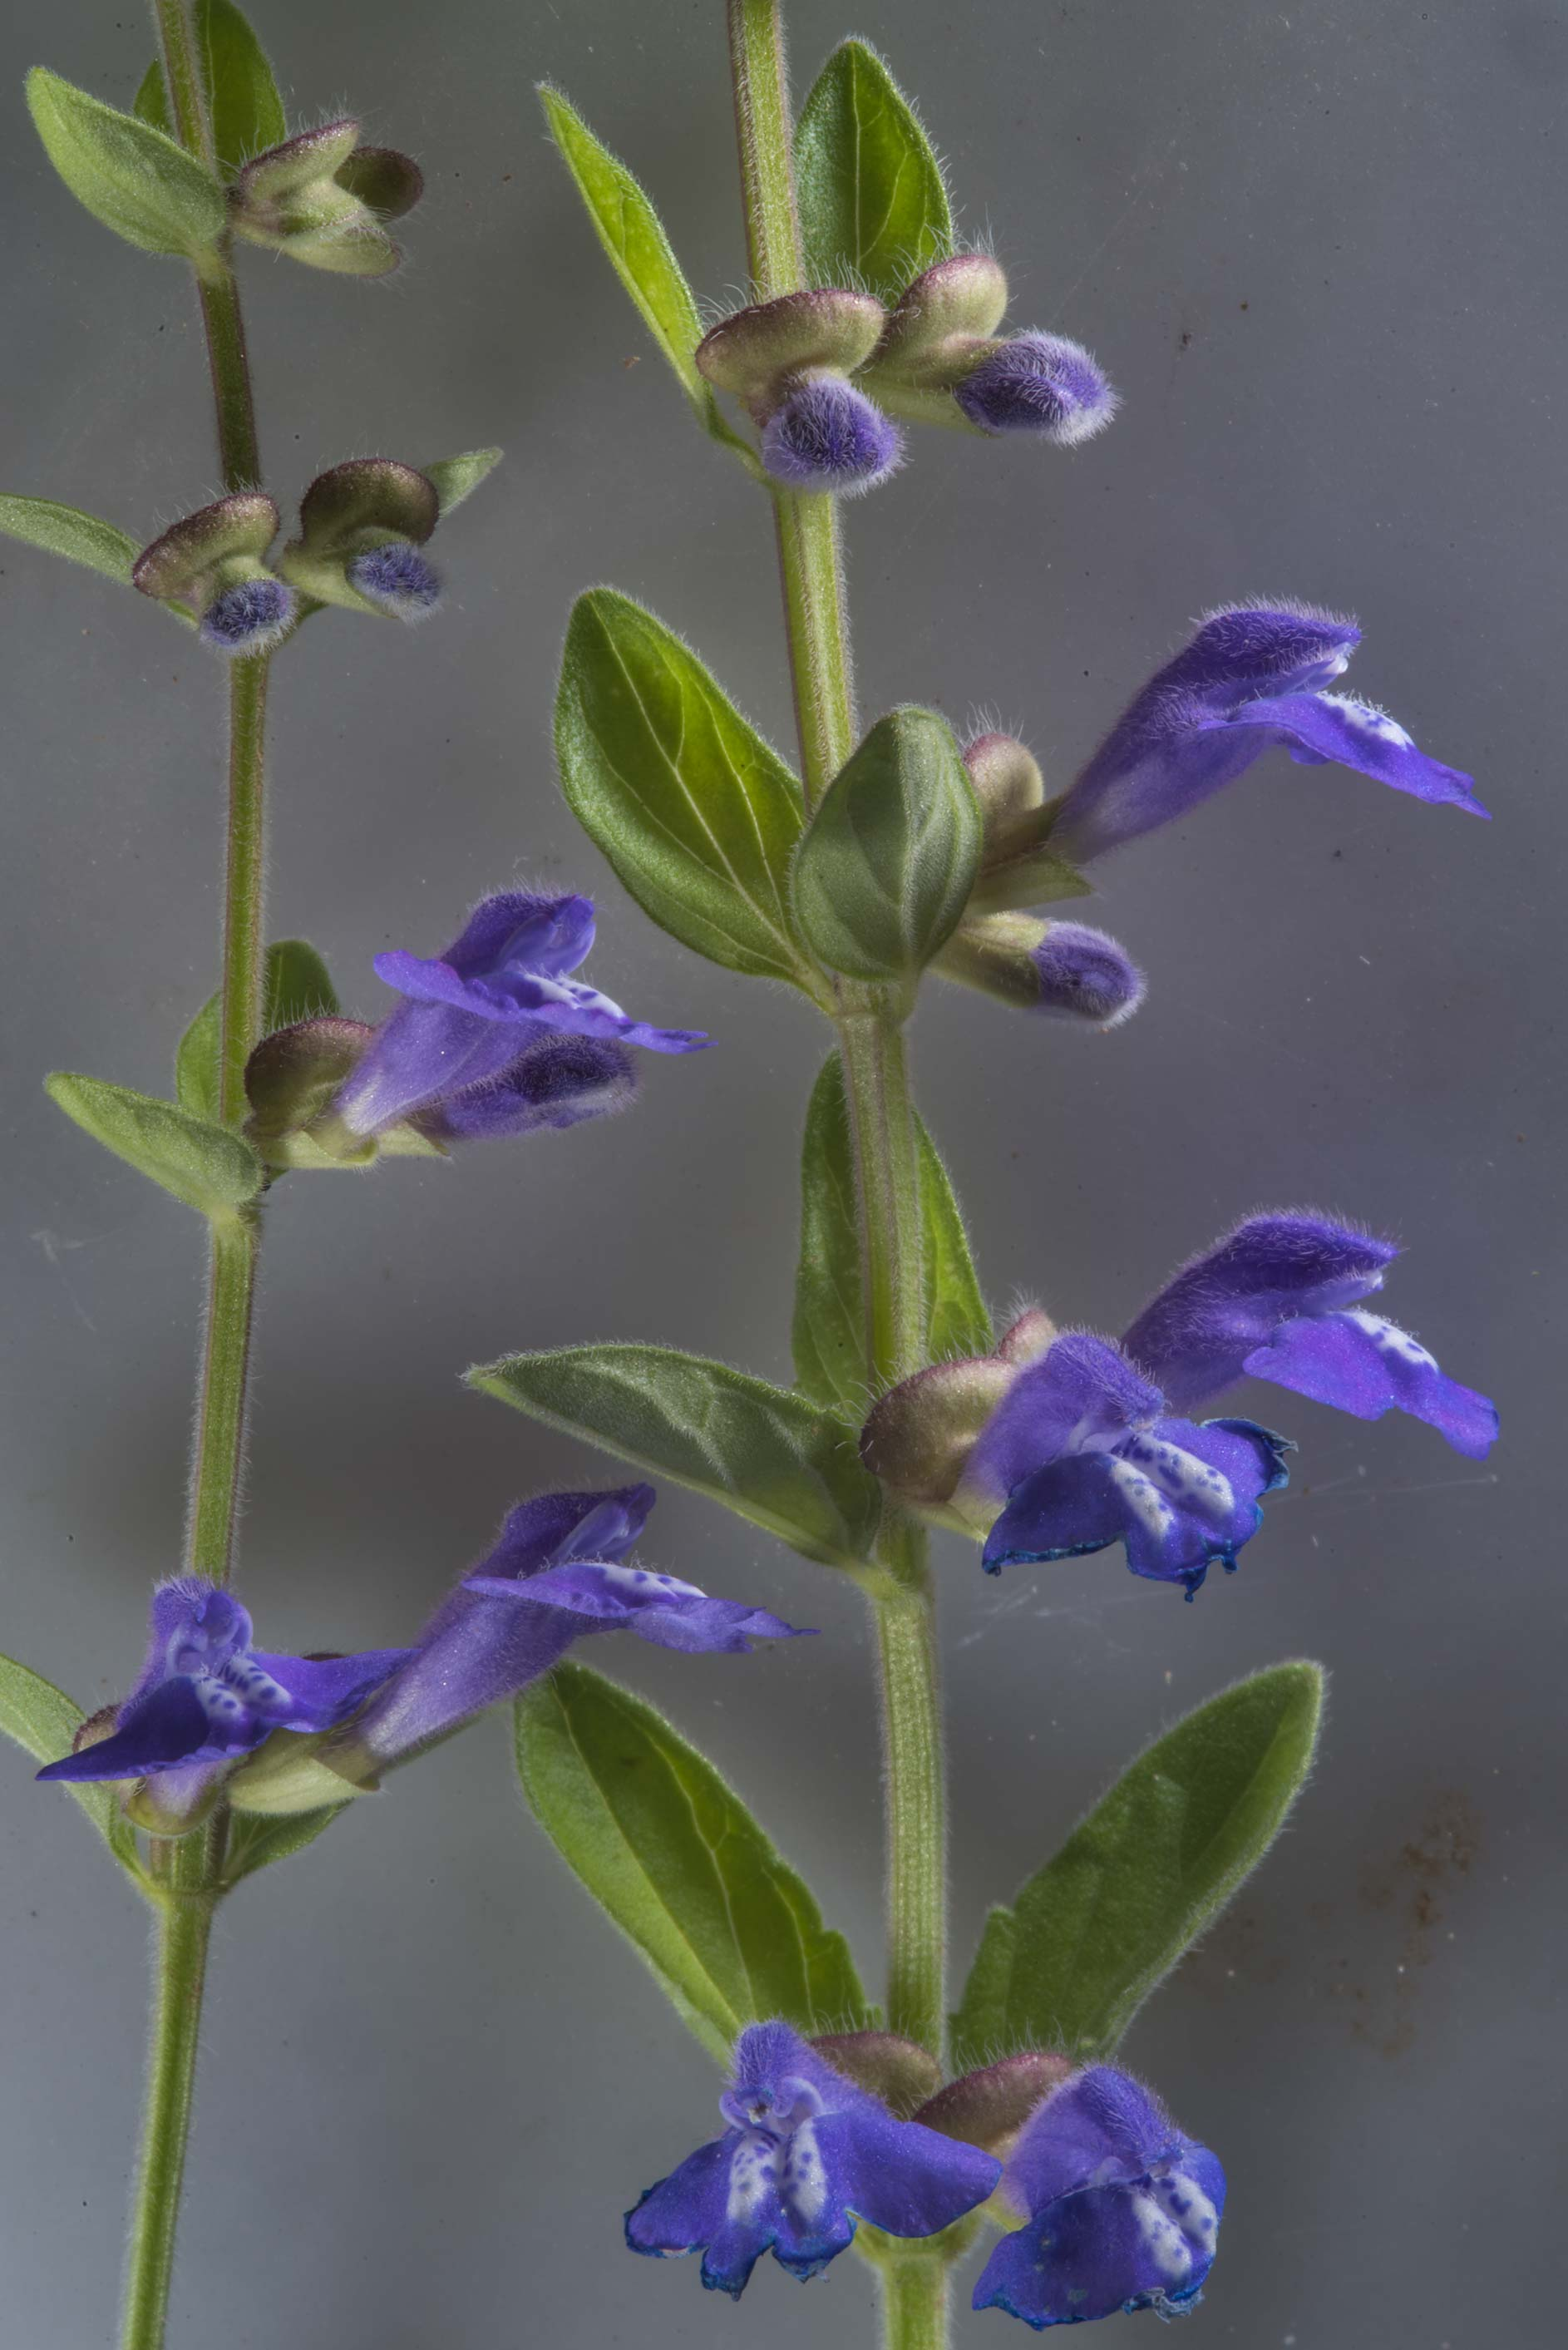 Blue skullcap flowers (Scutellaria) on north...of Somerville Lake State Park. Texas